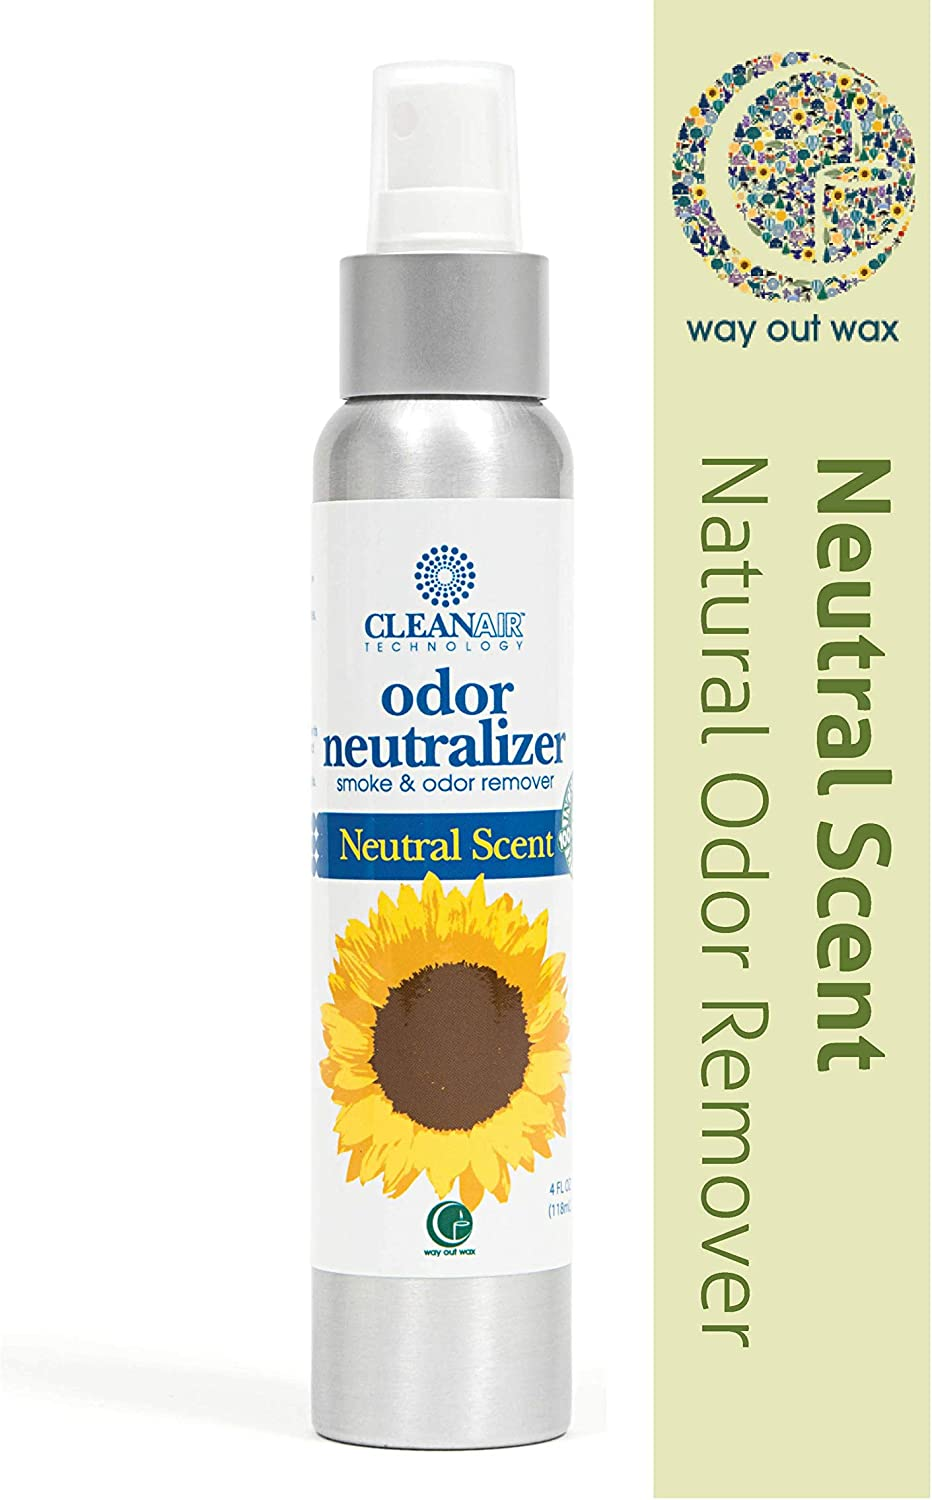 Way Out Wax Odor Neutralizing Spray, Clean Air Neutral Scent Odor Remover (4 oz Spray Bottle); All-Natural Air Freshener and Deodorizer